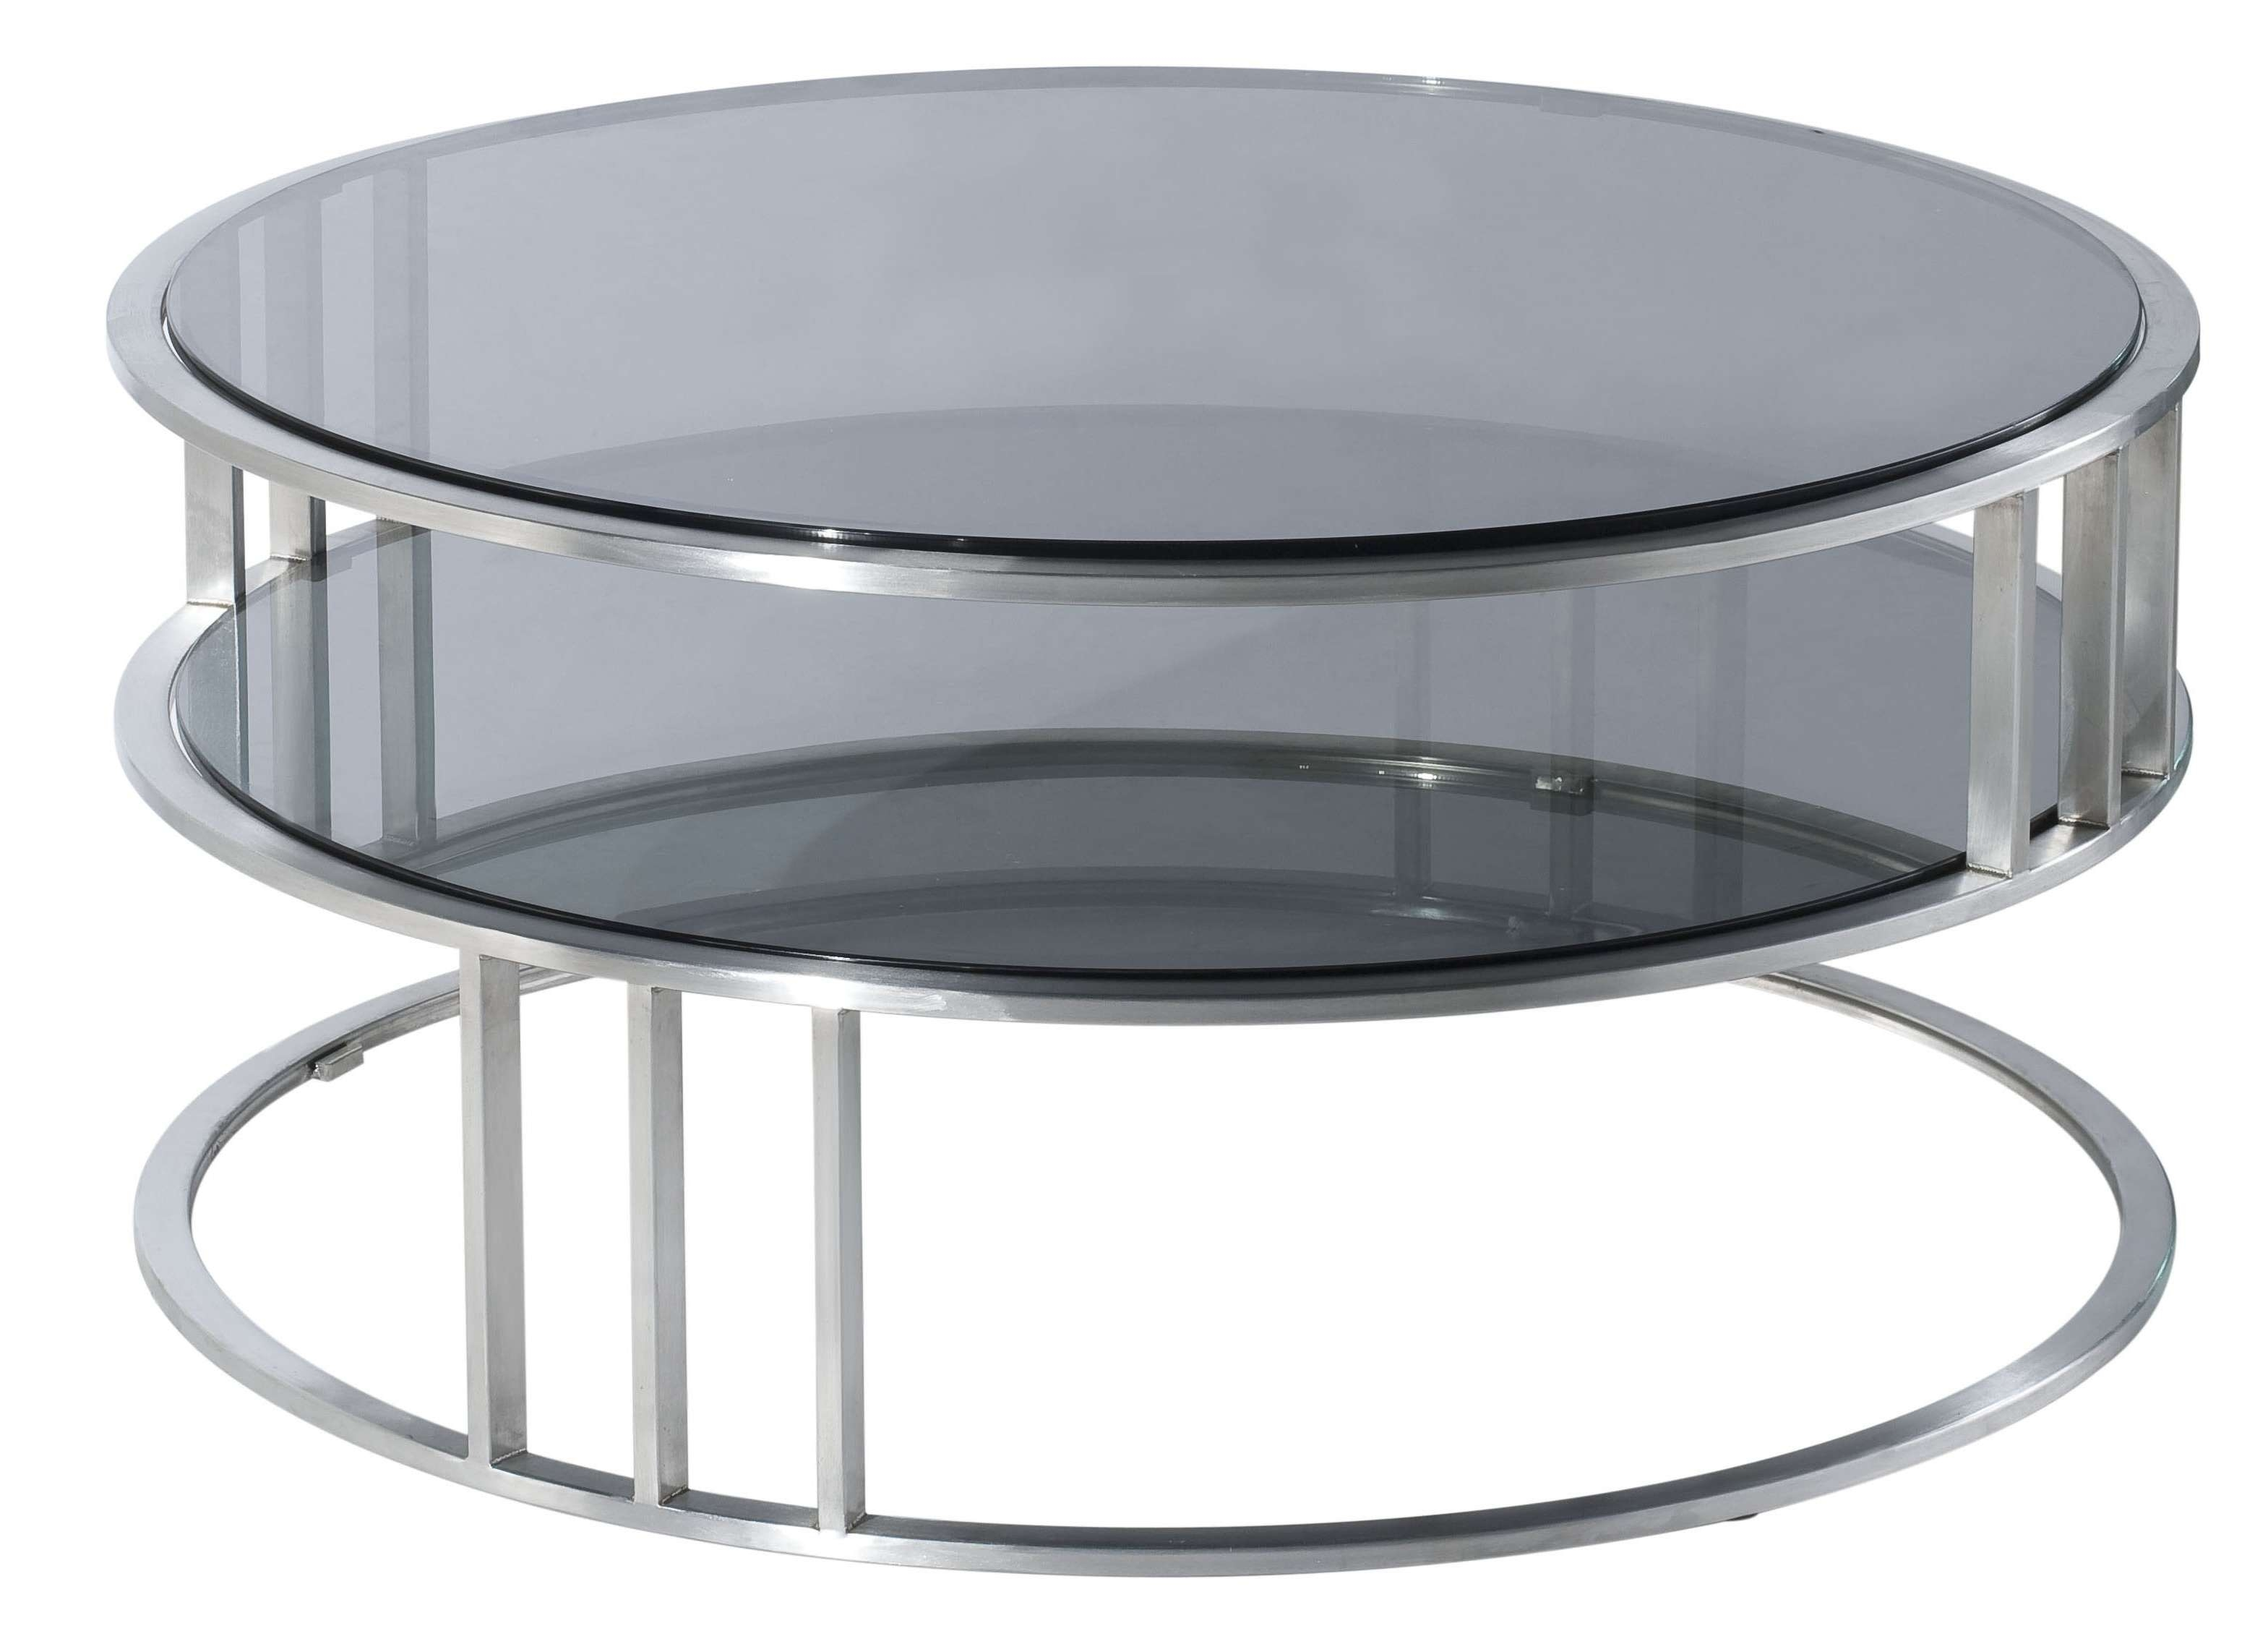 Contemporary Modern Round Coffee Table With Round Glass Top And In Well Liked Metal Coffee Tables With Glass Top (View 10 of 20)